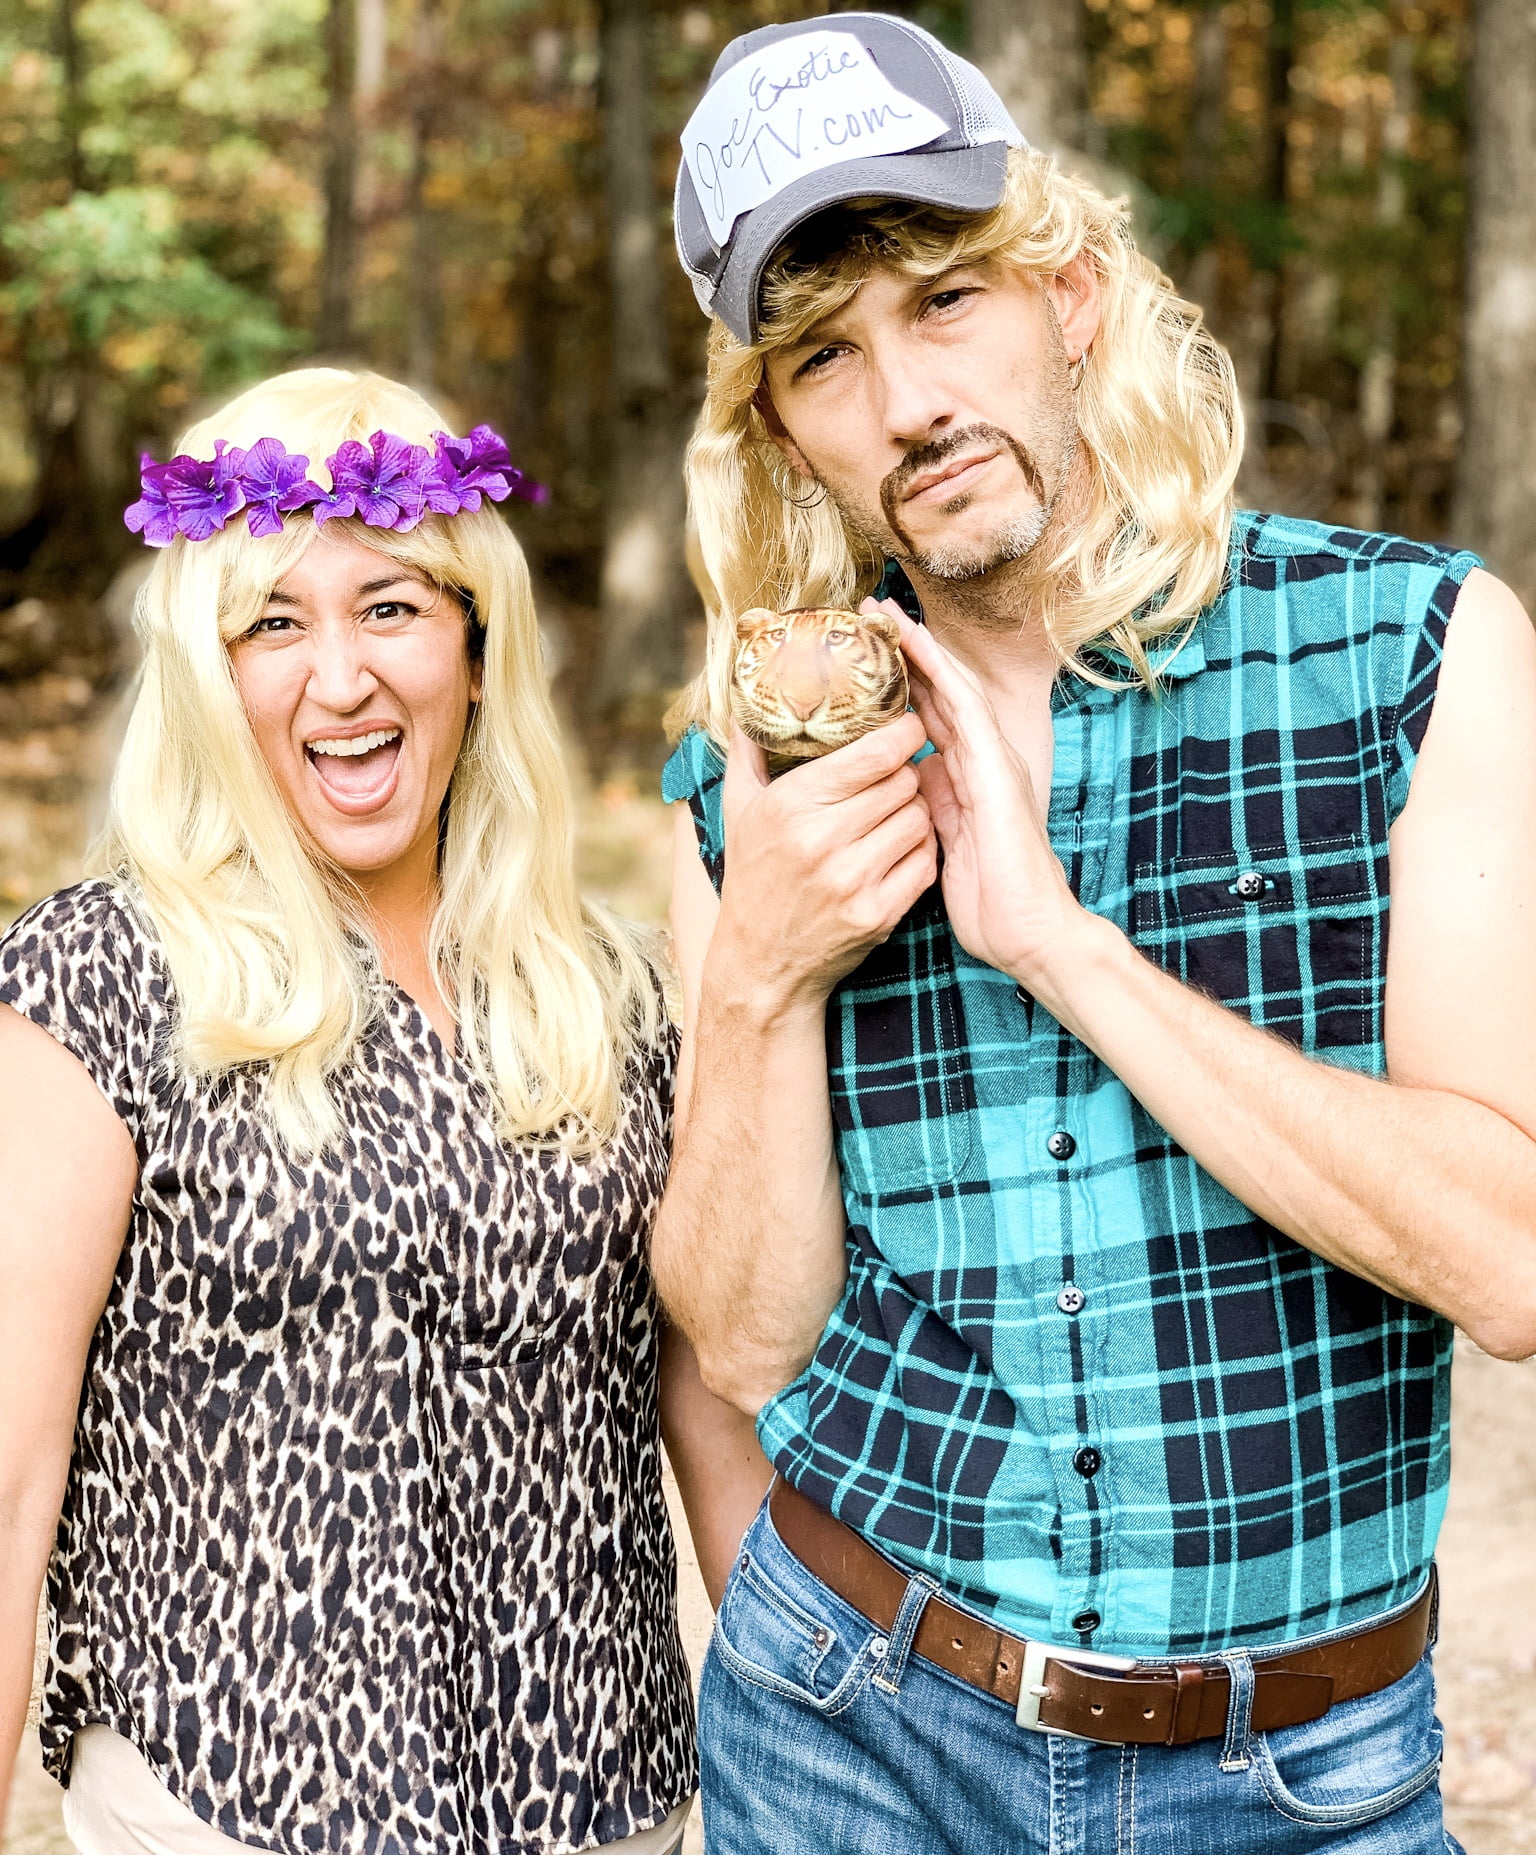 Tiger King Couples Costume